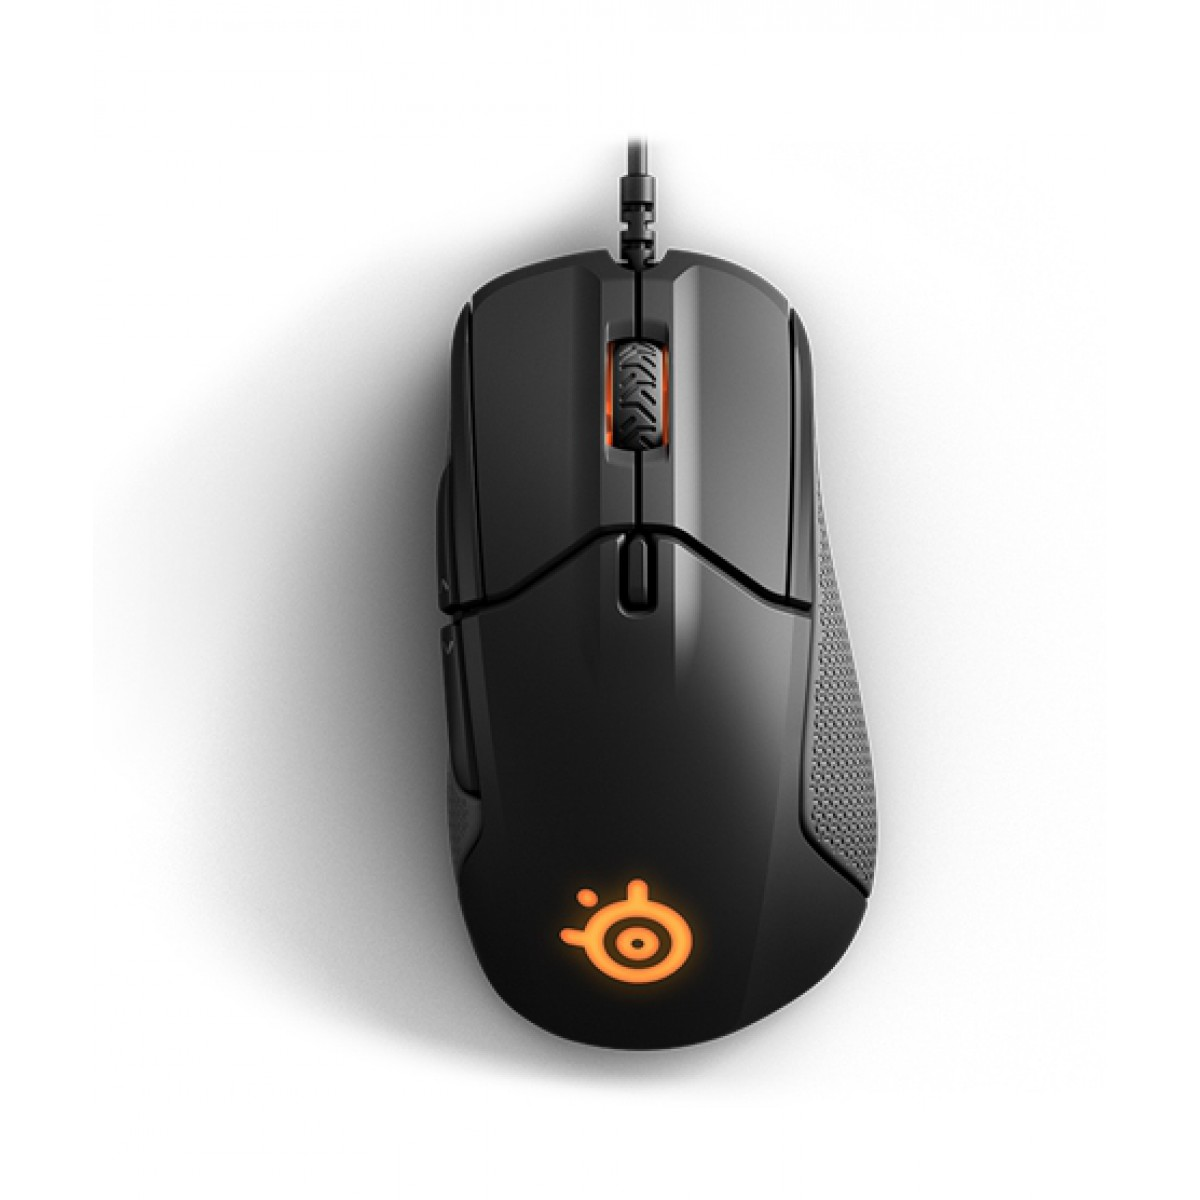 steelseries_rival_310_optical_gaming_mouse_black